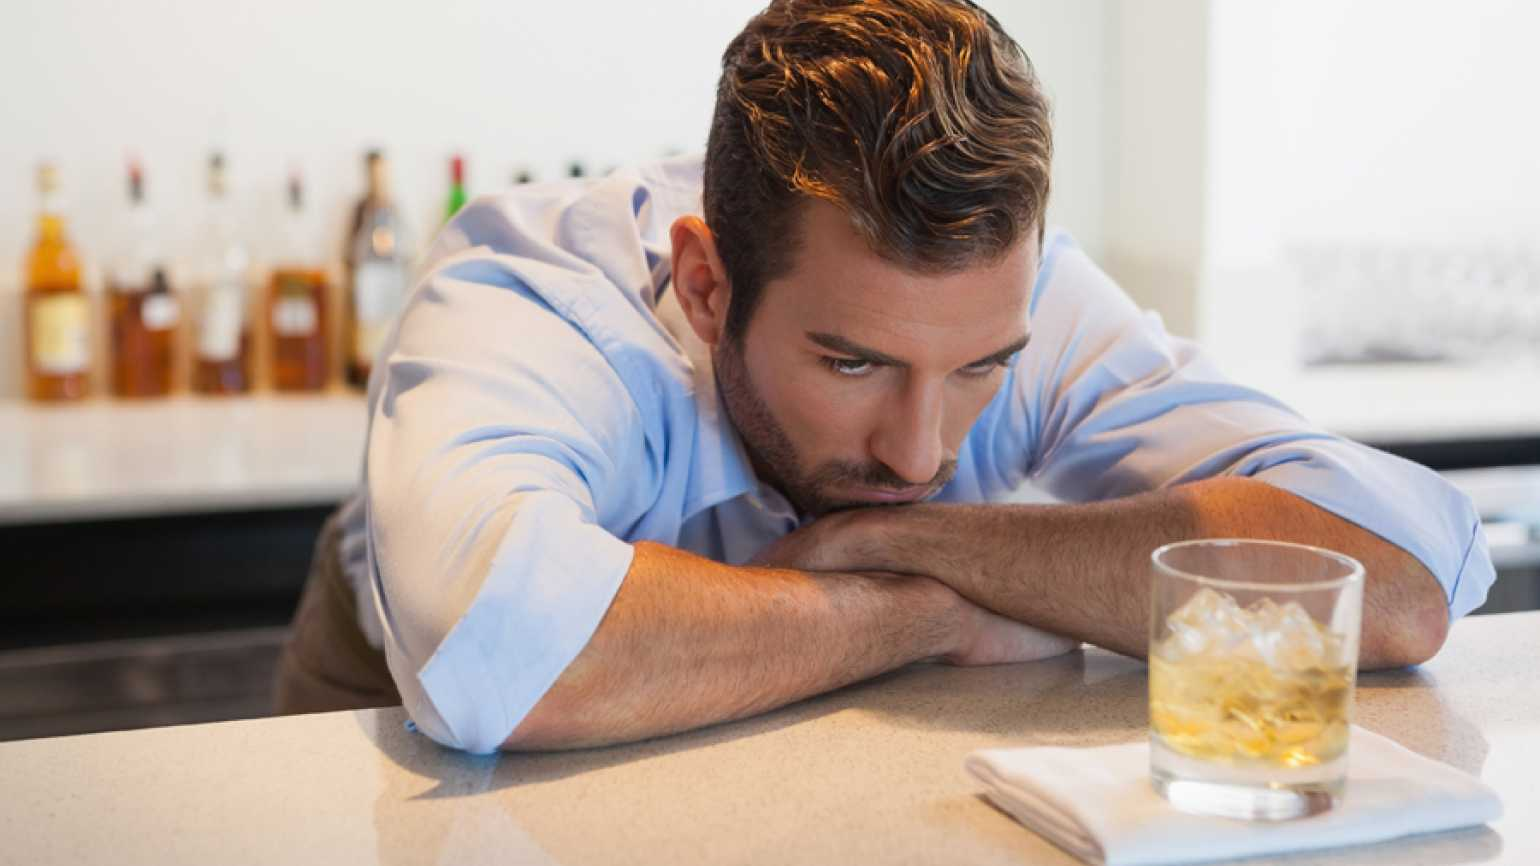 A man struggles to resist drinking a glass of alcohol that rests in front of him